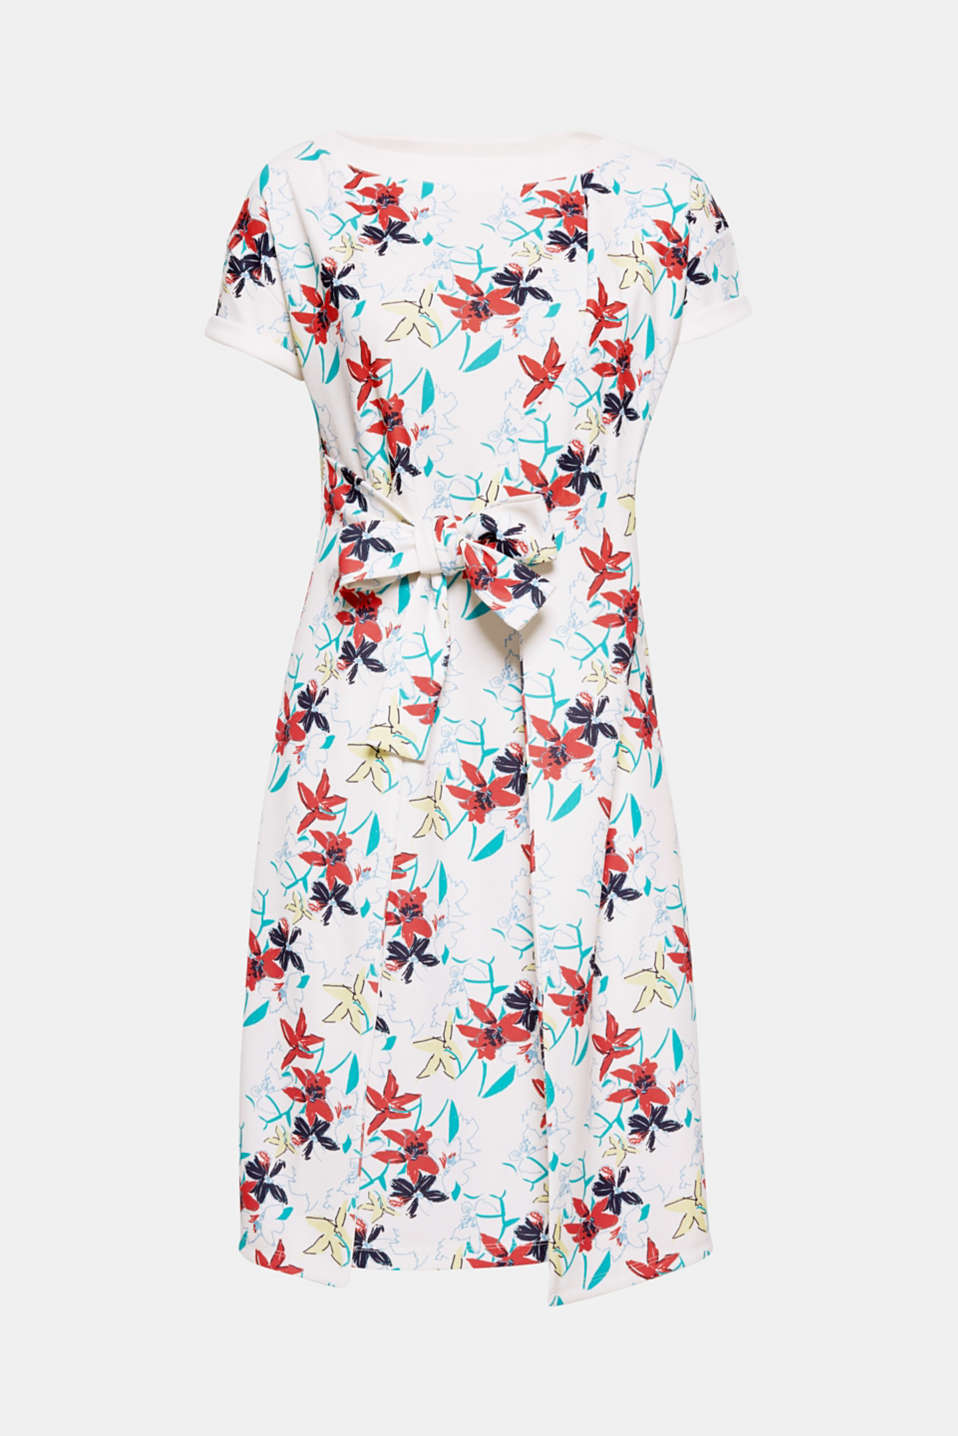 The casual fit, stylish floral print and knotted front section make this dress in thick stretch jersey a fashion piece!